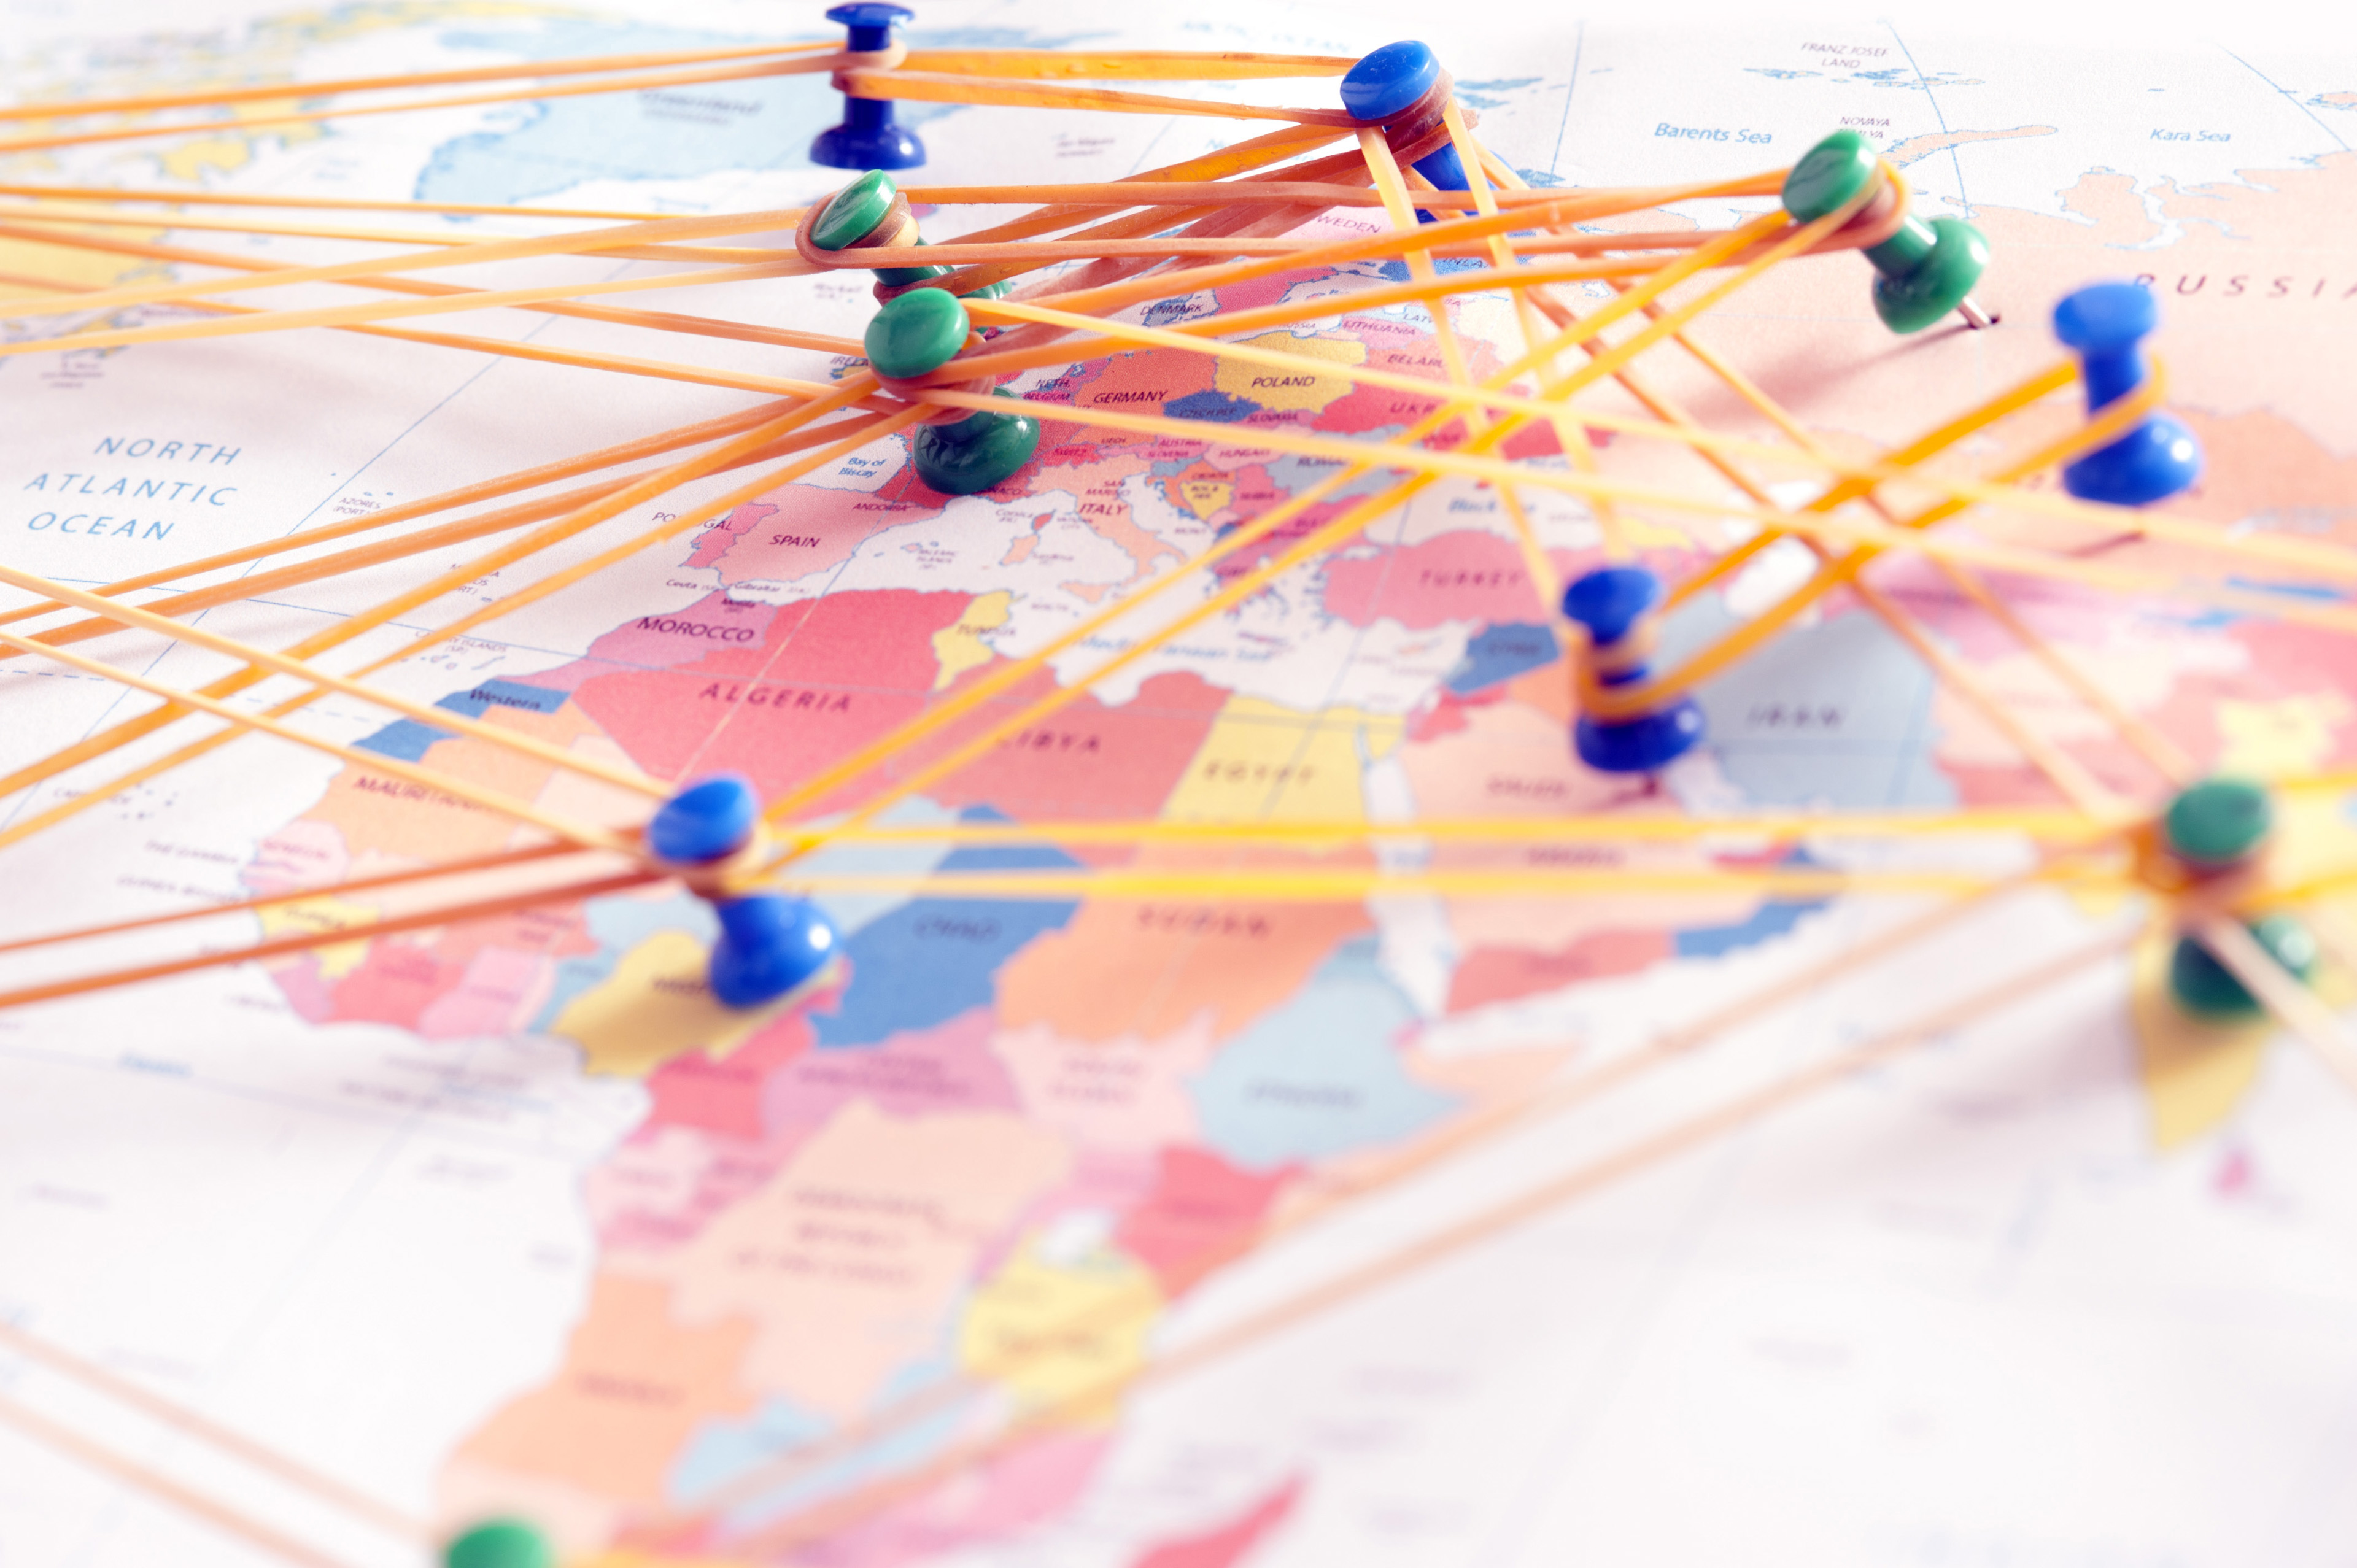 Conceptual image of pins on a map depicting international connections, communications and travel